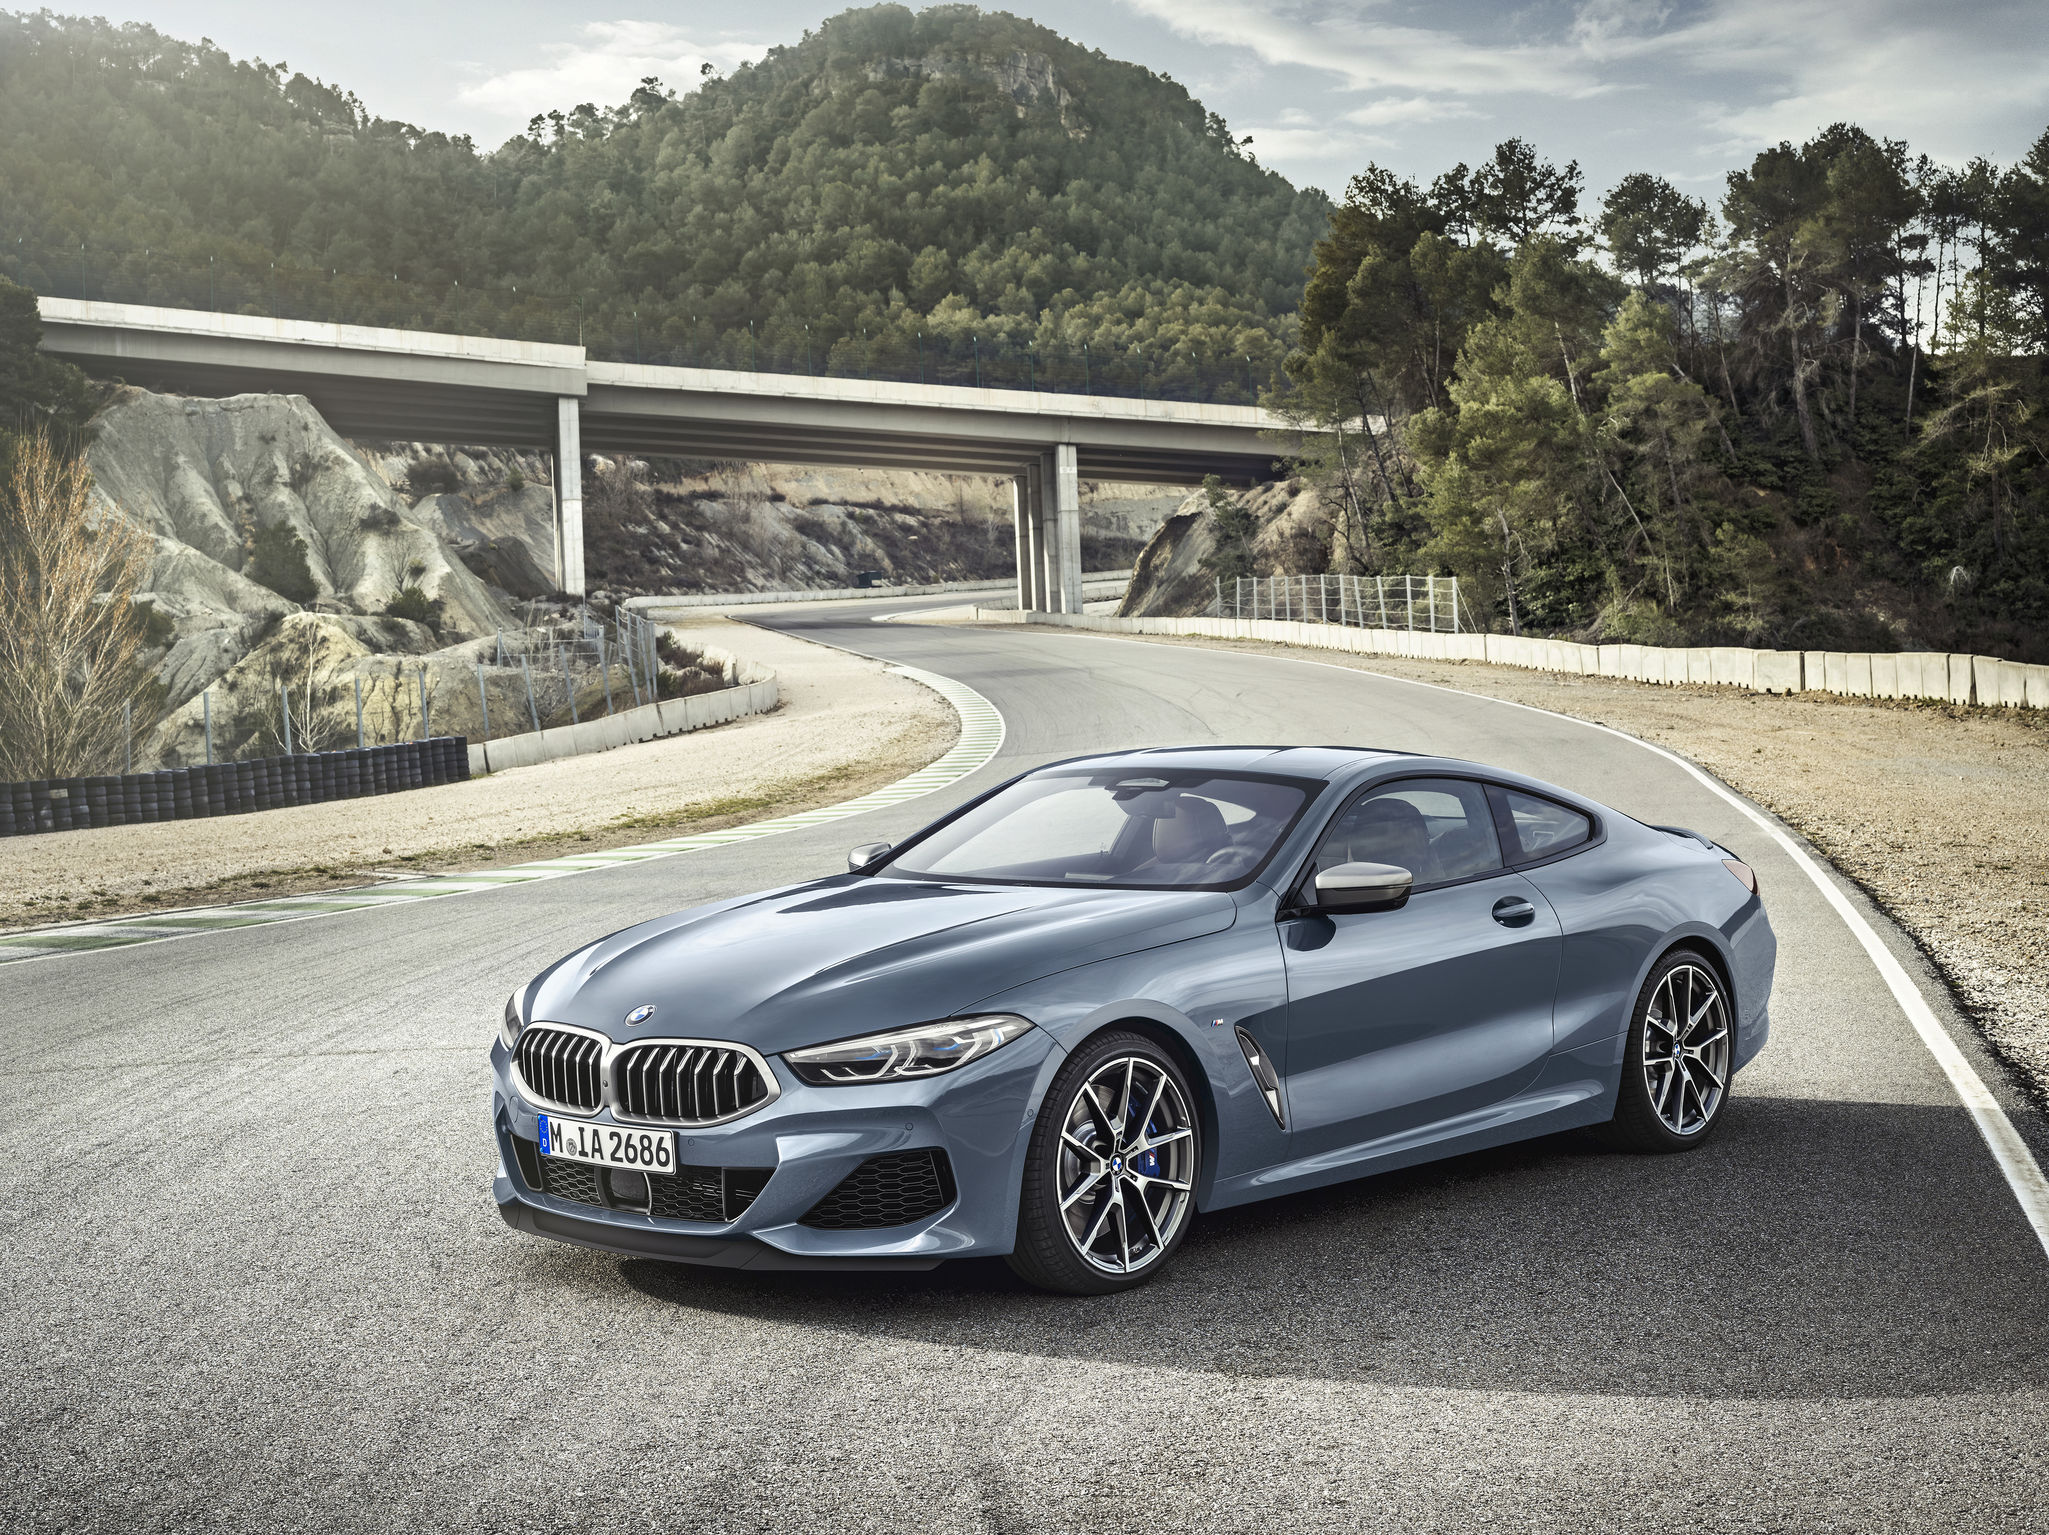 The All New Bmw 8 Series Coupe If World Design Guide